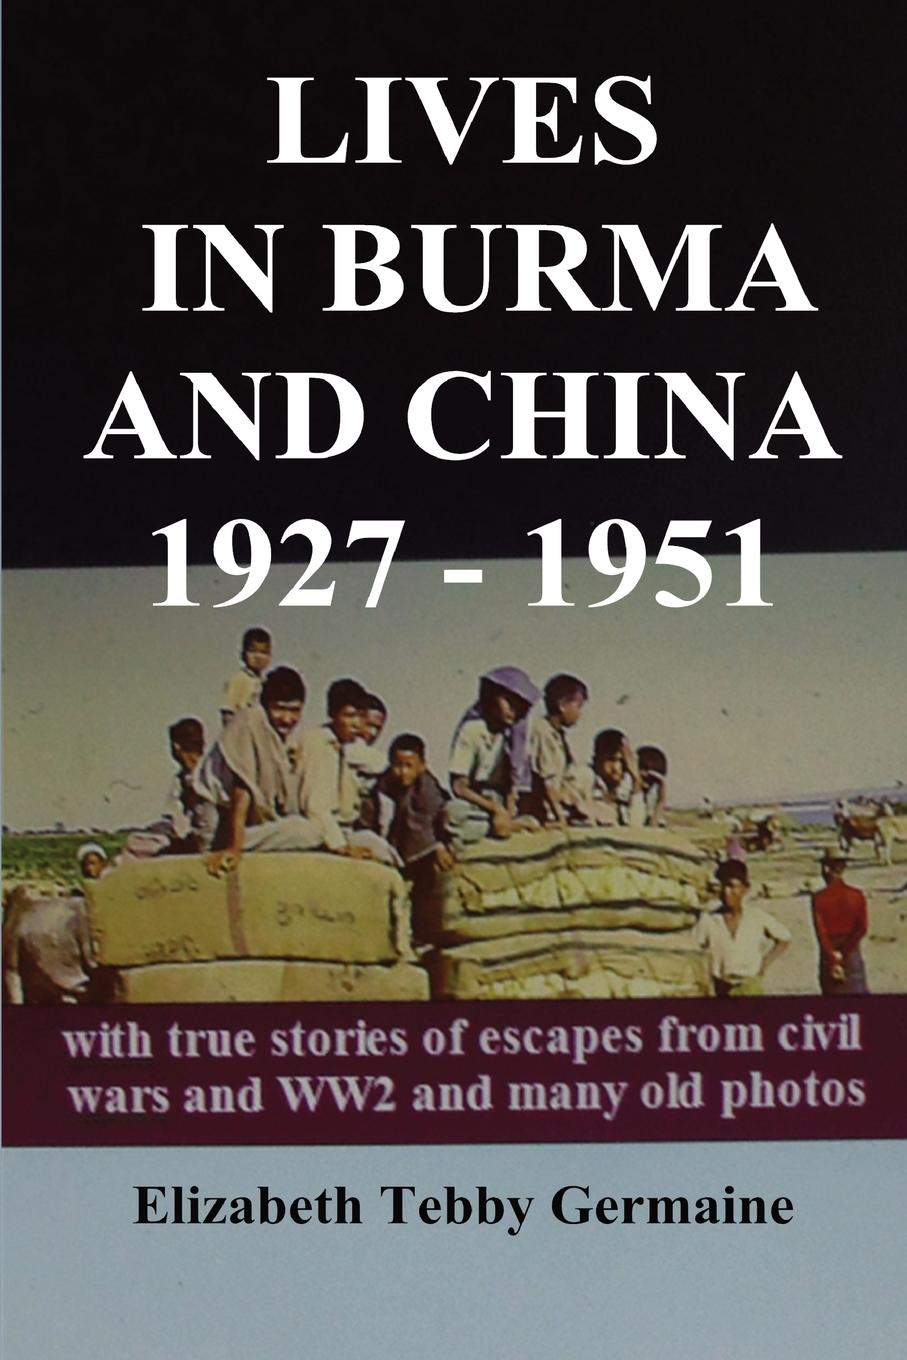 Elizabeth Tebby Germaine LIVES IN BURMA AND CHINA 1927 - 1951 insight guides myanmar burma